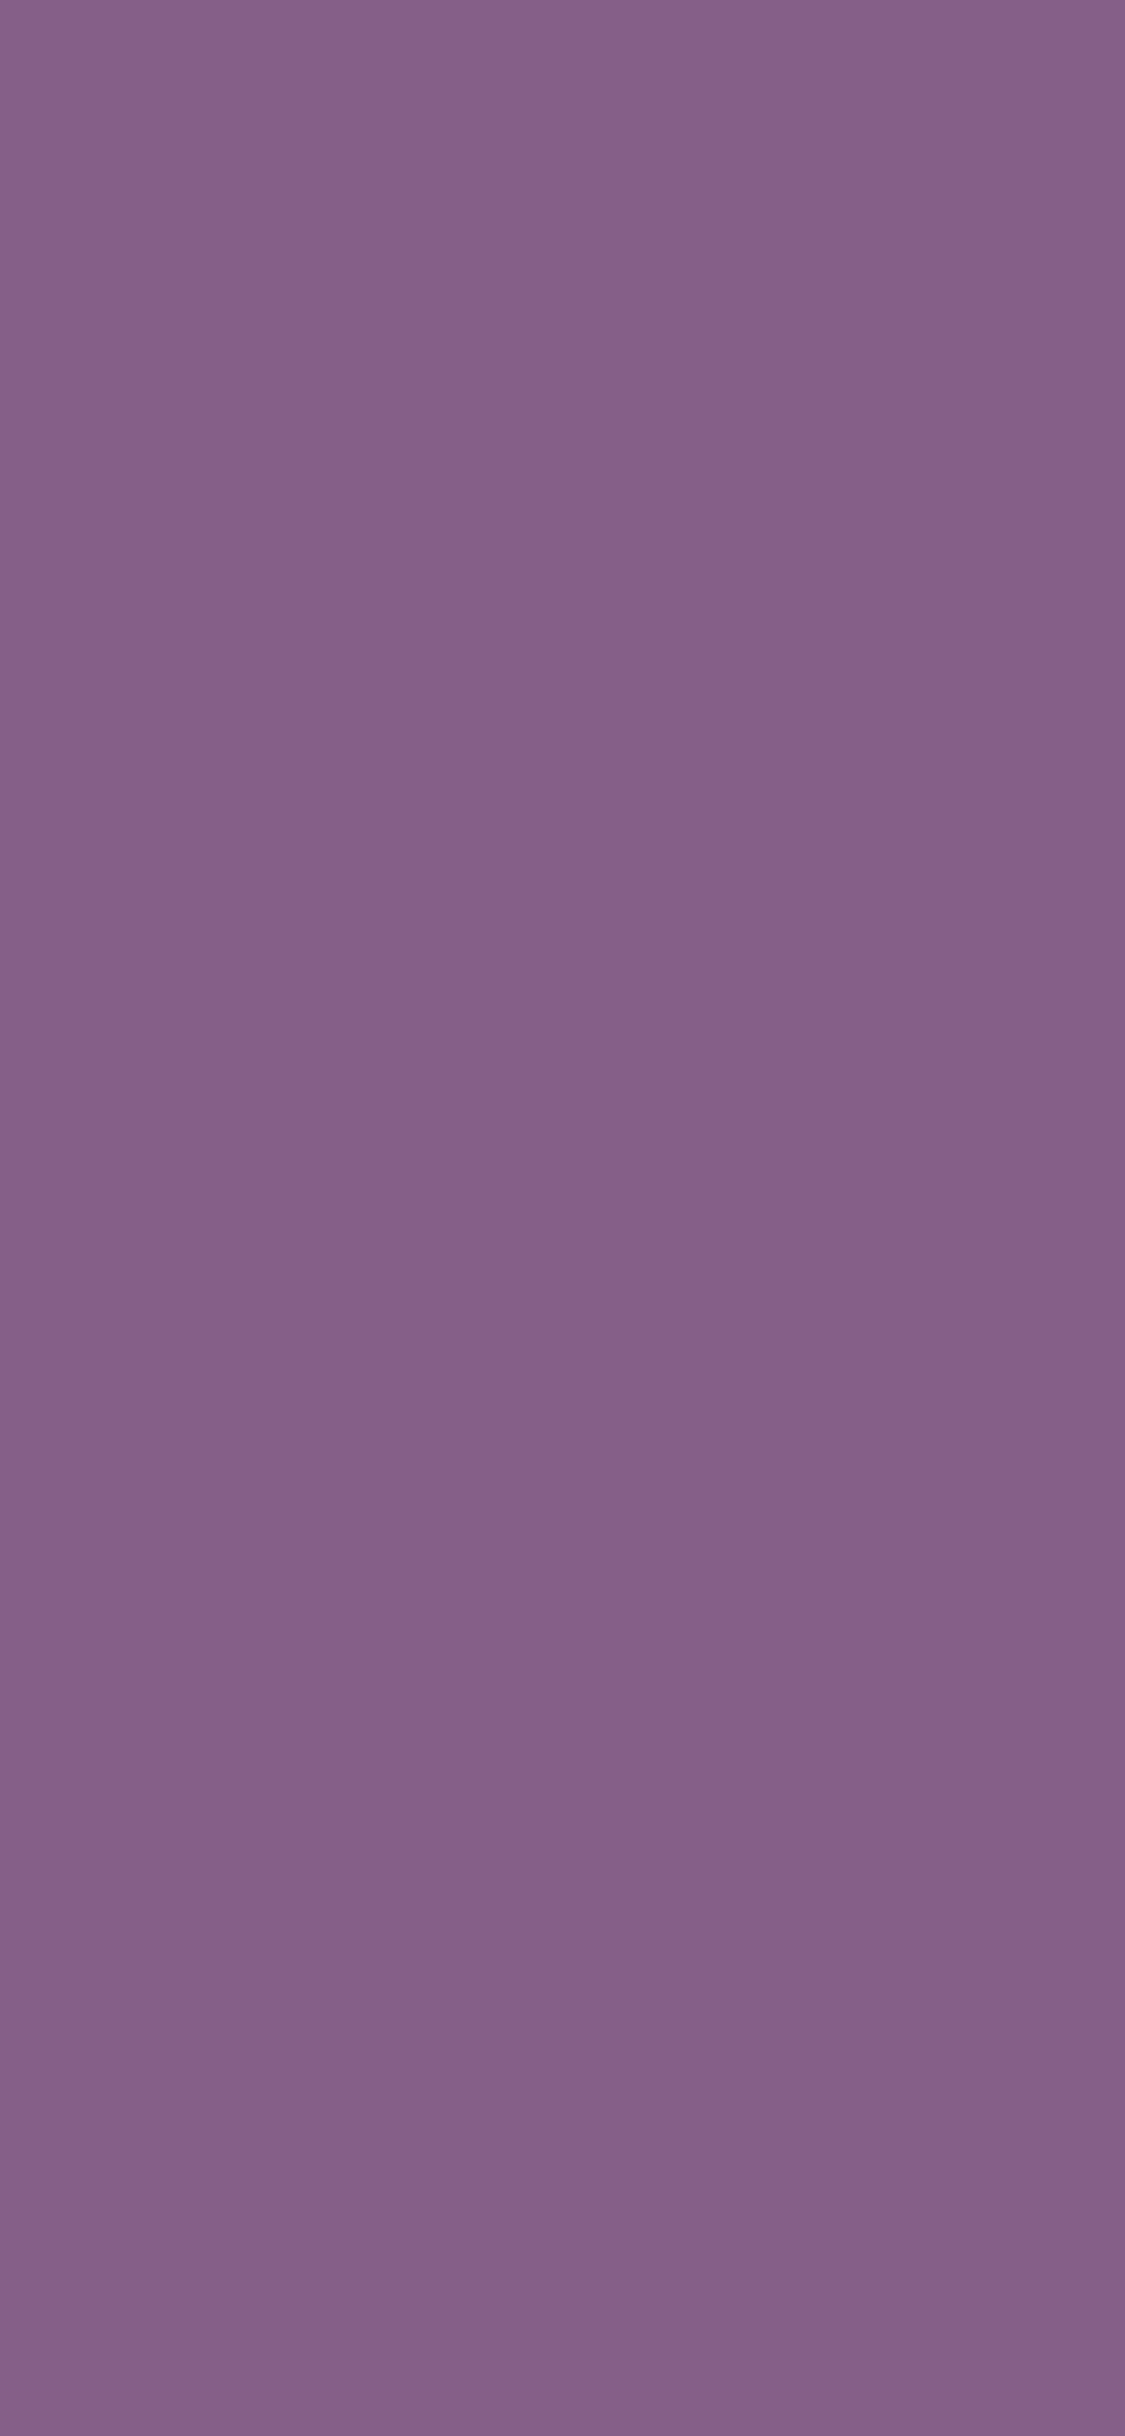 1125x2436 Chinese Violet Solid Color Background